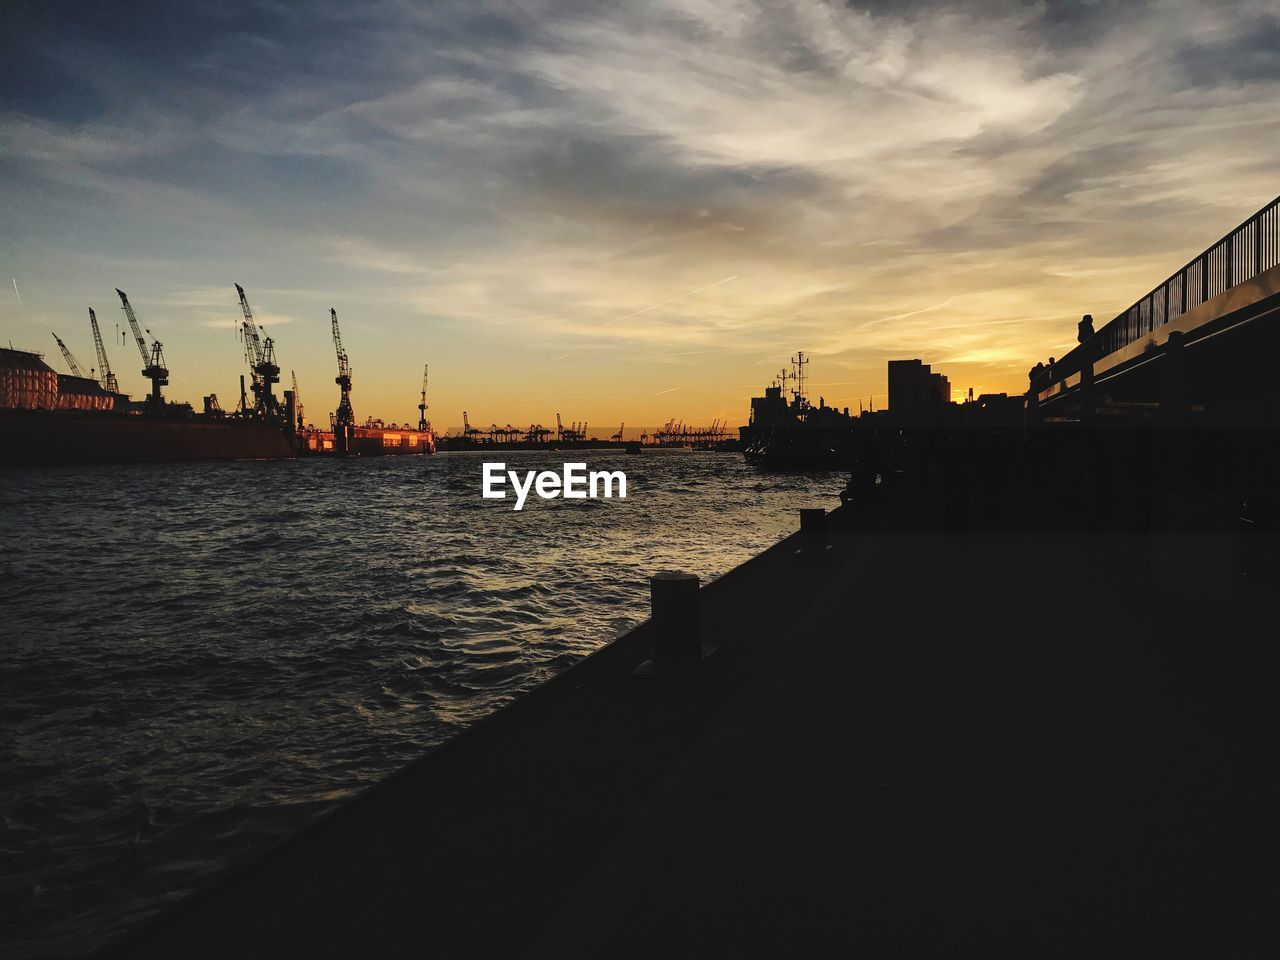 sky, sunset, water, cloud - sky, architecture, crane - construction machinery, built structure, building exterior, nature, sea, machinery, city, no people, transportation, orange color, nautical vessel, freight transportation, silhouette, shipping, outdoors, construction equipment